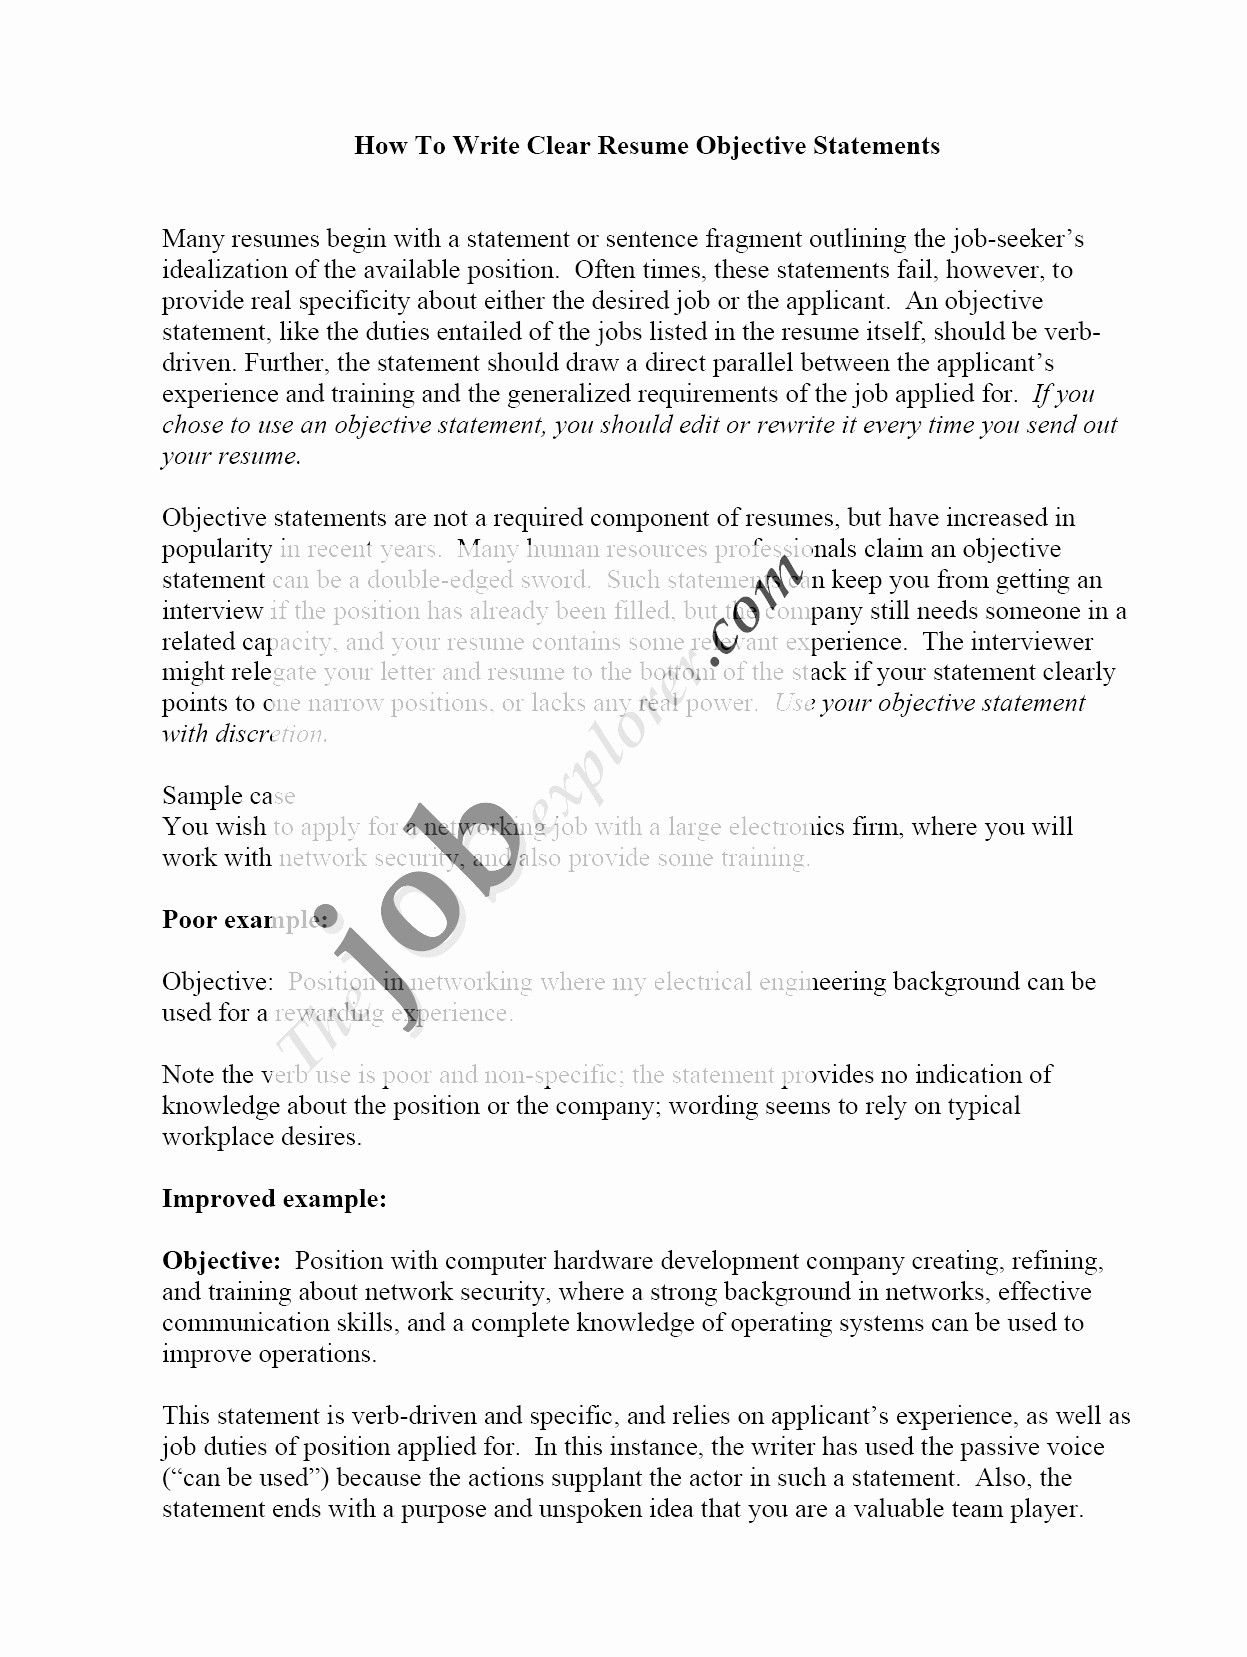 69 Awesome Photos Of Career Change Resume Profile Statement Examples